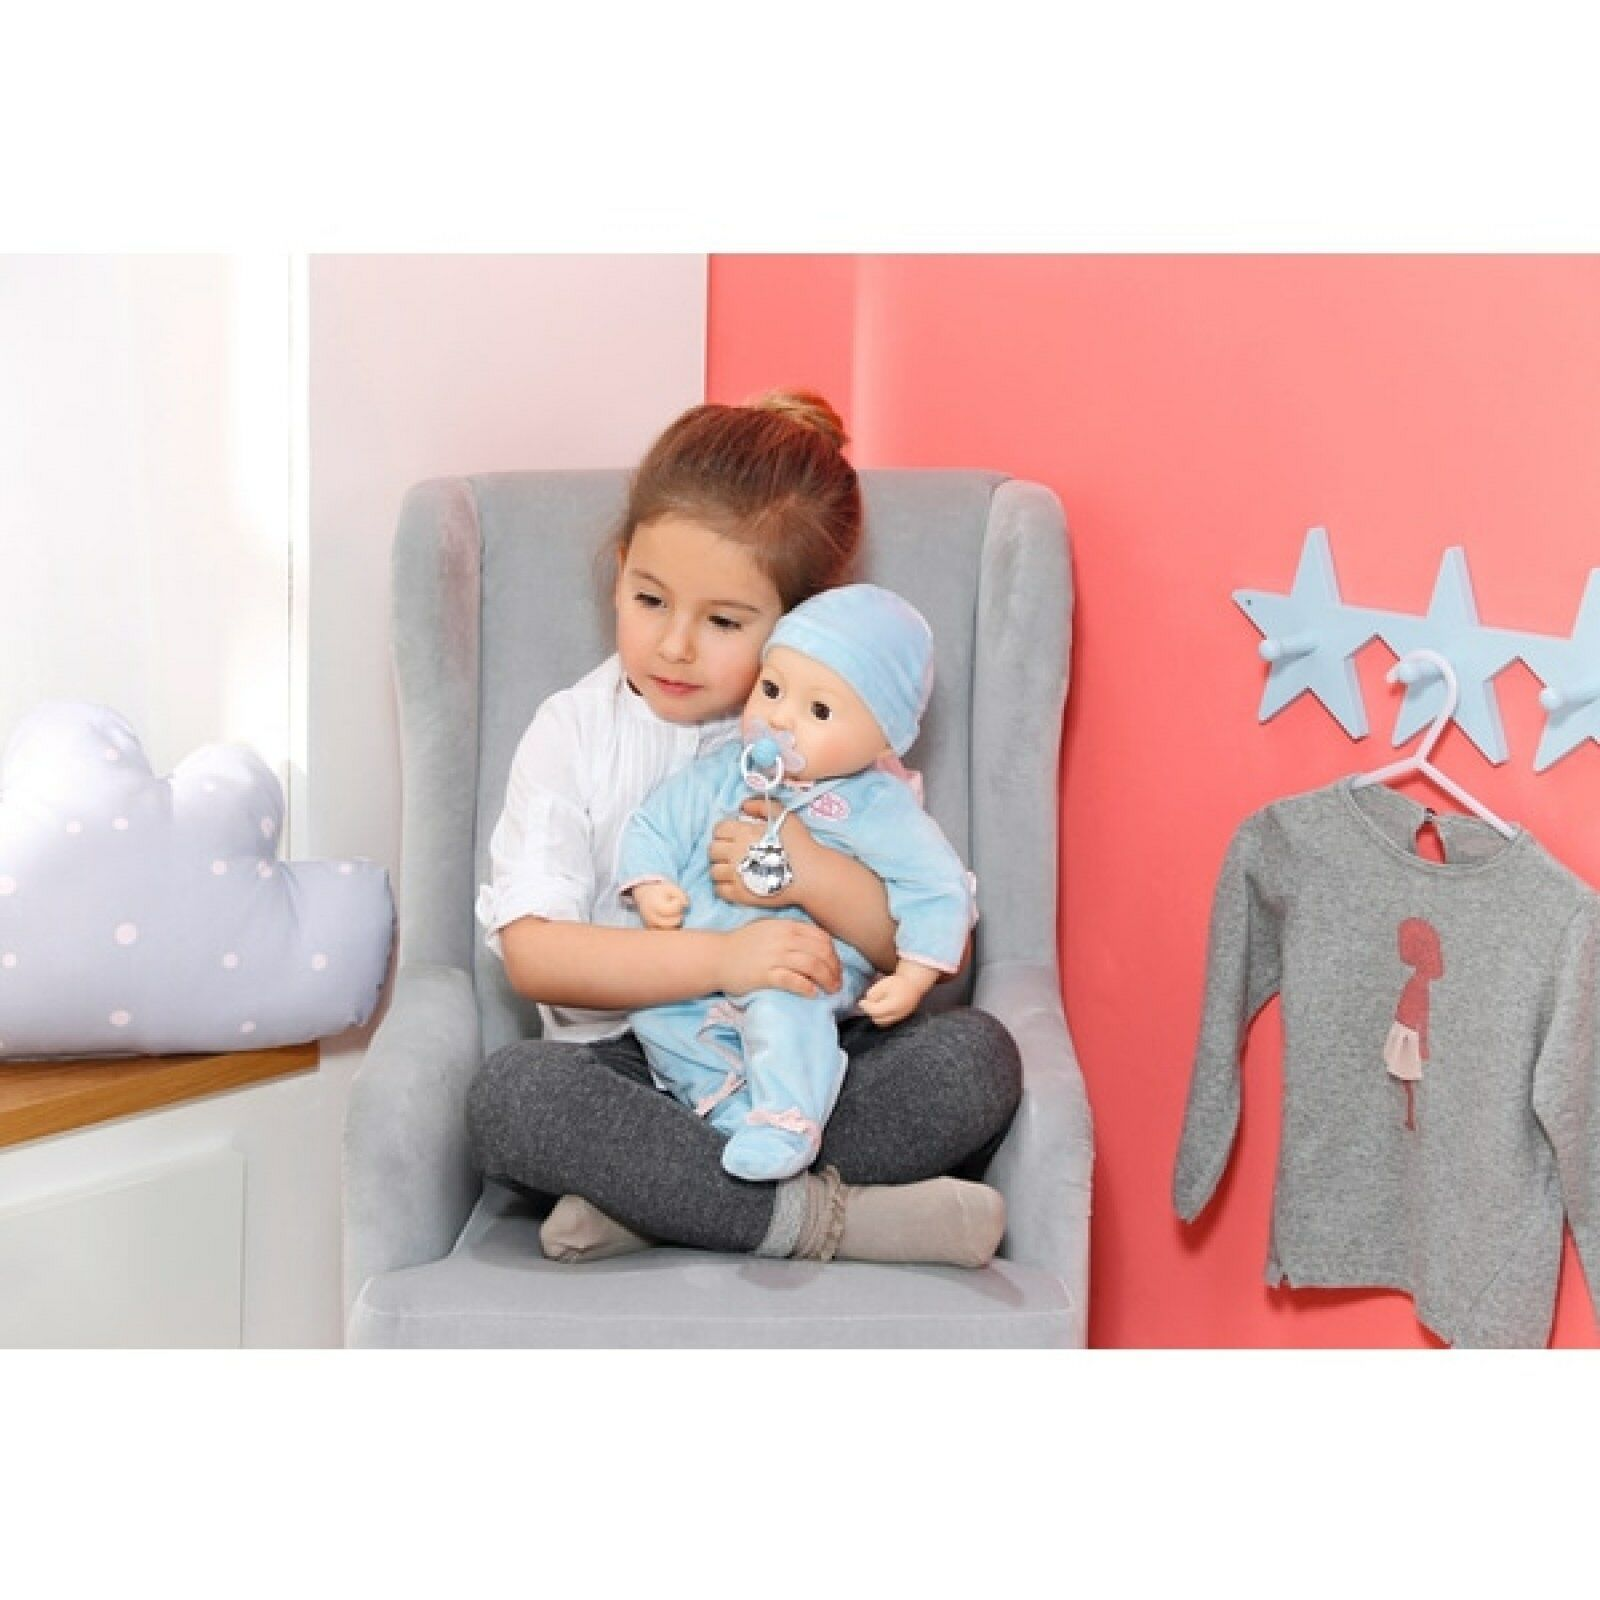 Baby Annabell Brother Doll Alexander Kids Girls Fun Play Toy Collection Gift New